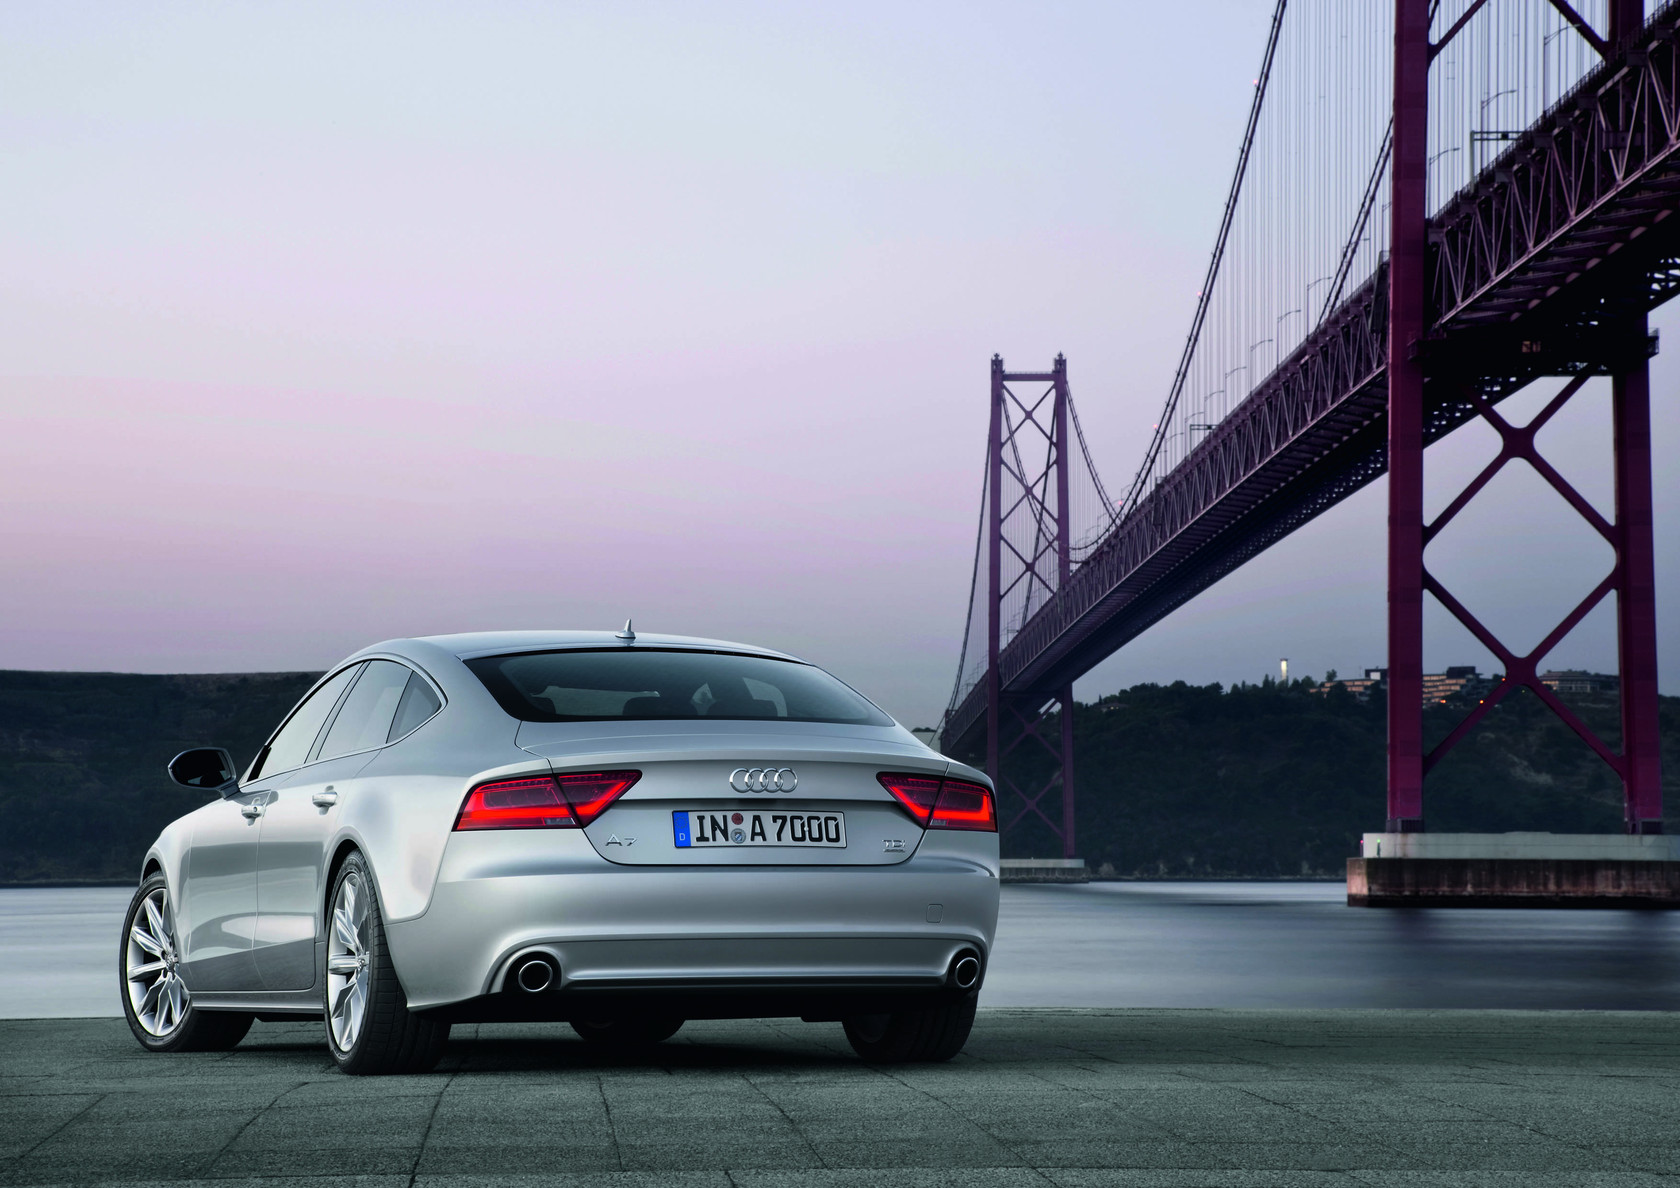 Audi A7 Sportback Auto Wallpapers GroenLicht.be